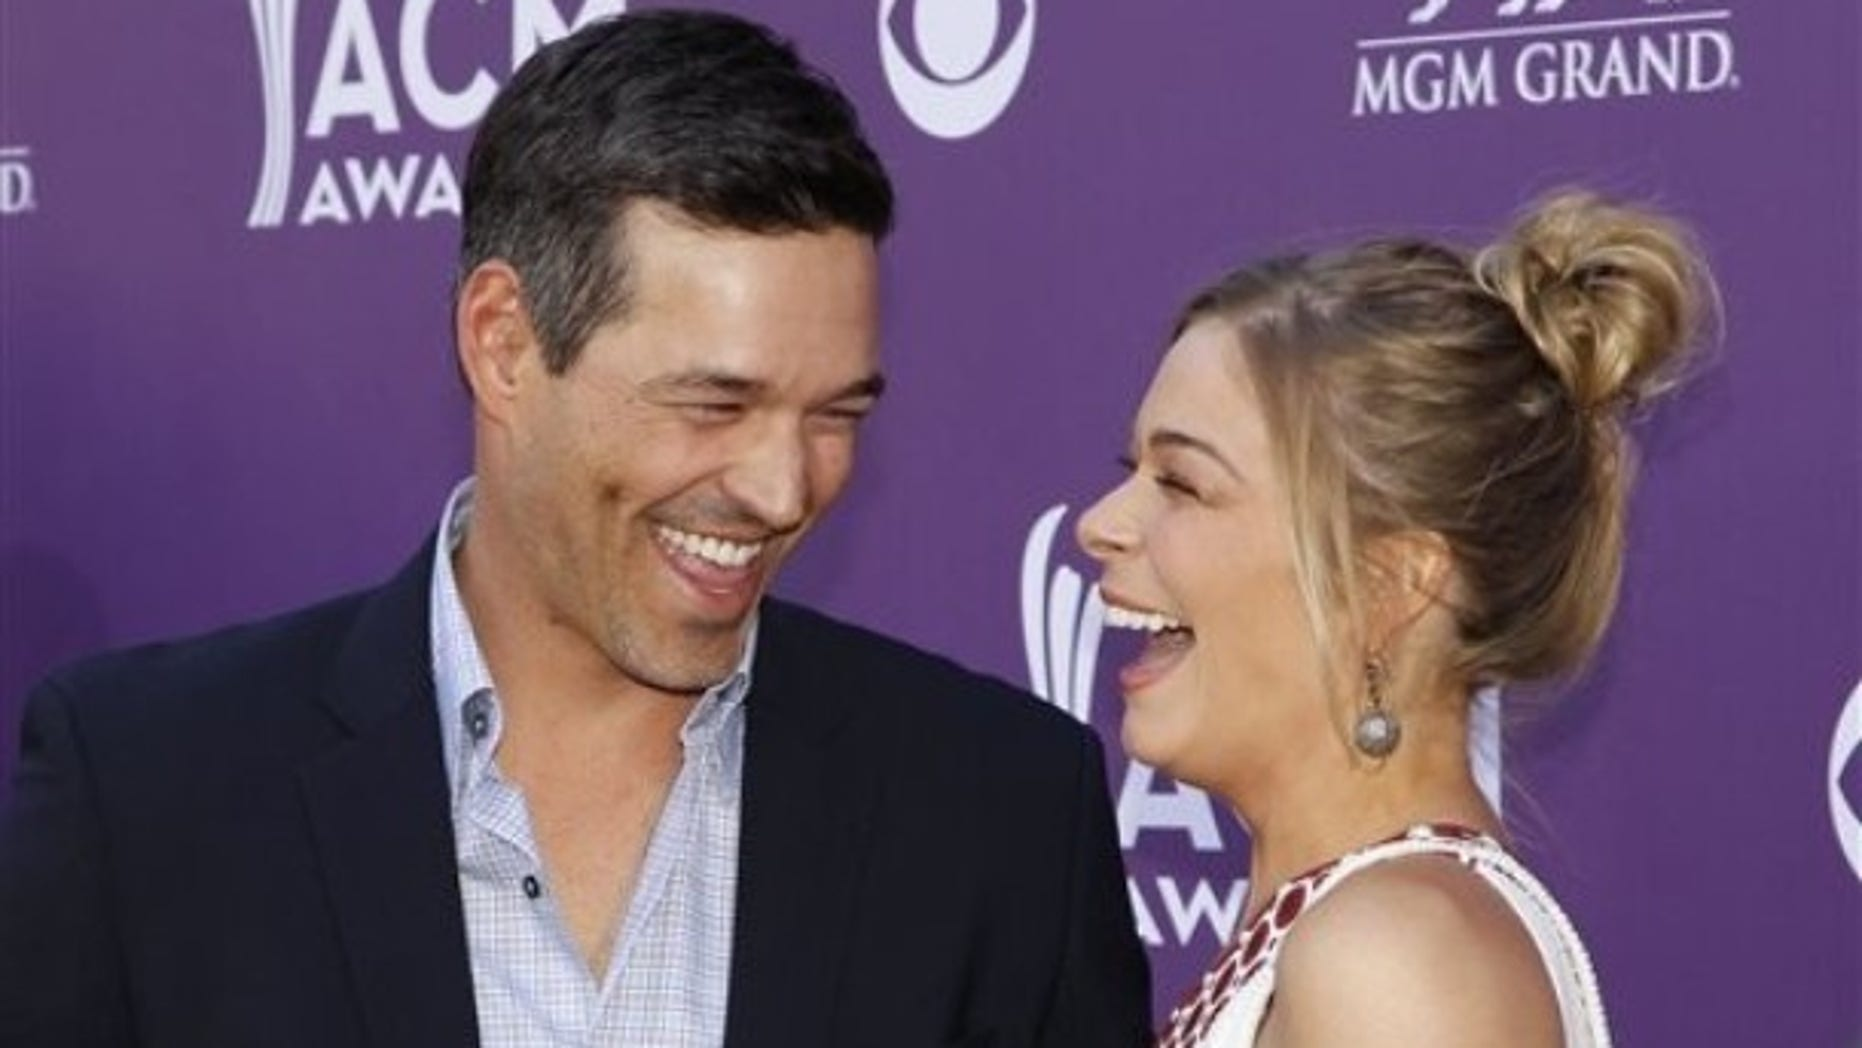 LeAnn Rimes, right, and Eddie Cibrian arrive at the 47th Annual Academy of Country Music Awards on Sunday, April 1, 2012 in Las Vegas. (AP Photo/Isaac Brekken)